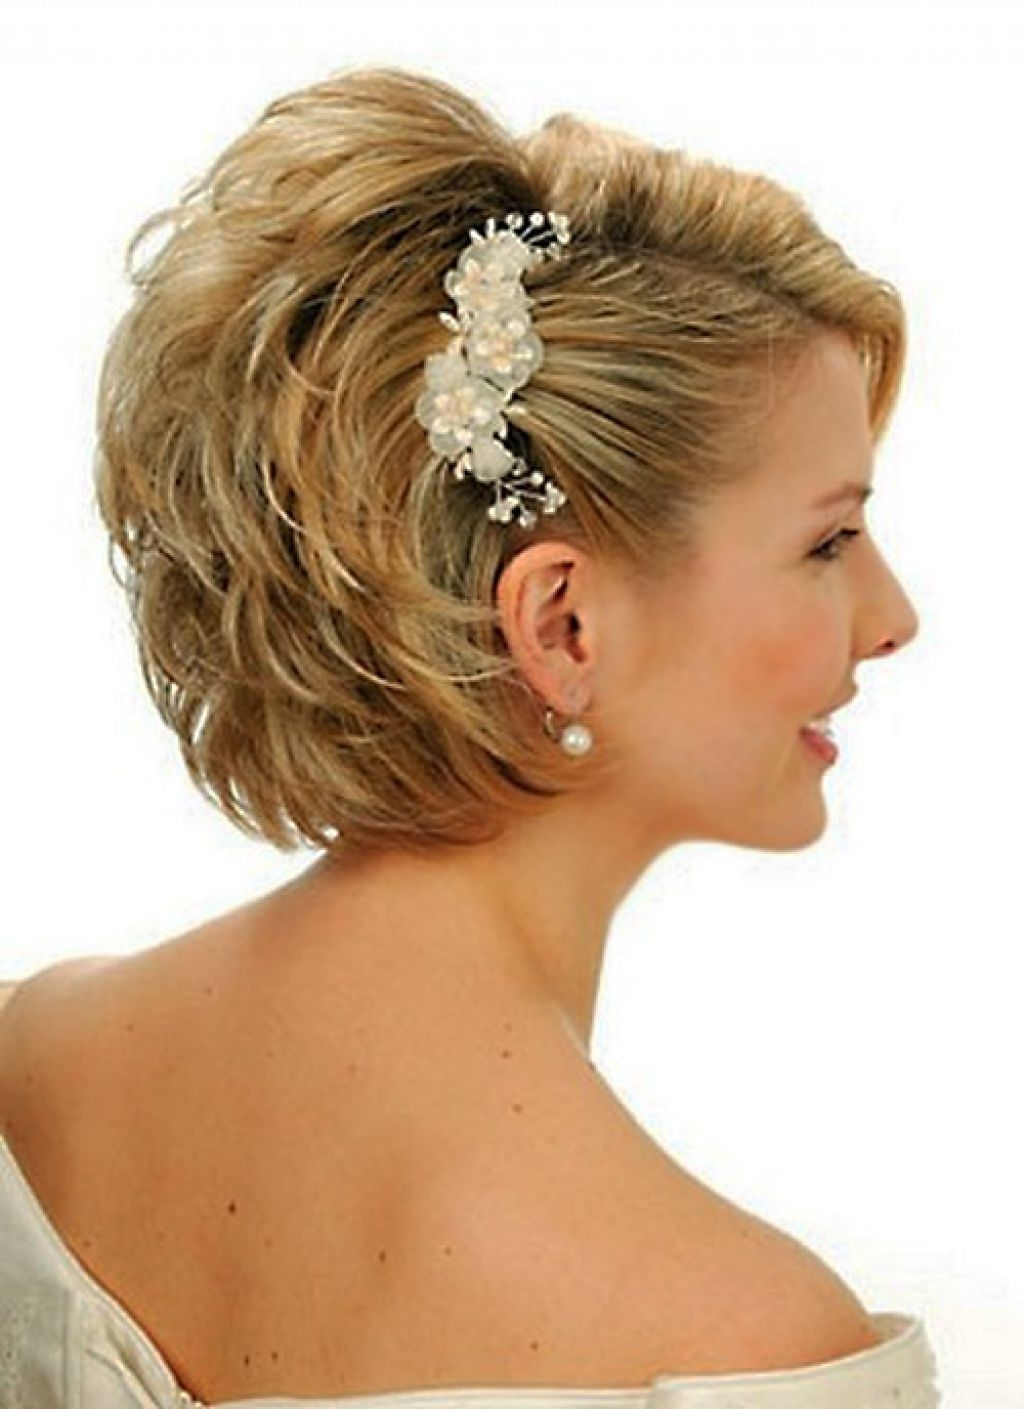 Classy Updo Hairstyles For Bridal Women – Popular Long Hairstyle Idea For Short Wedding Updo Hairstyles (View 6 of 15)